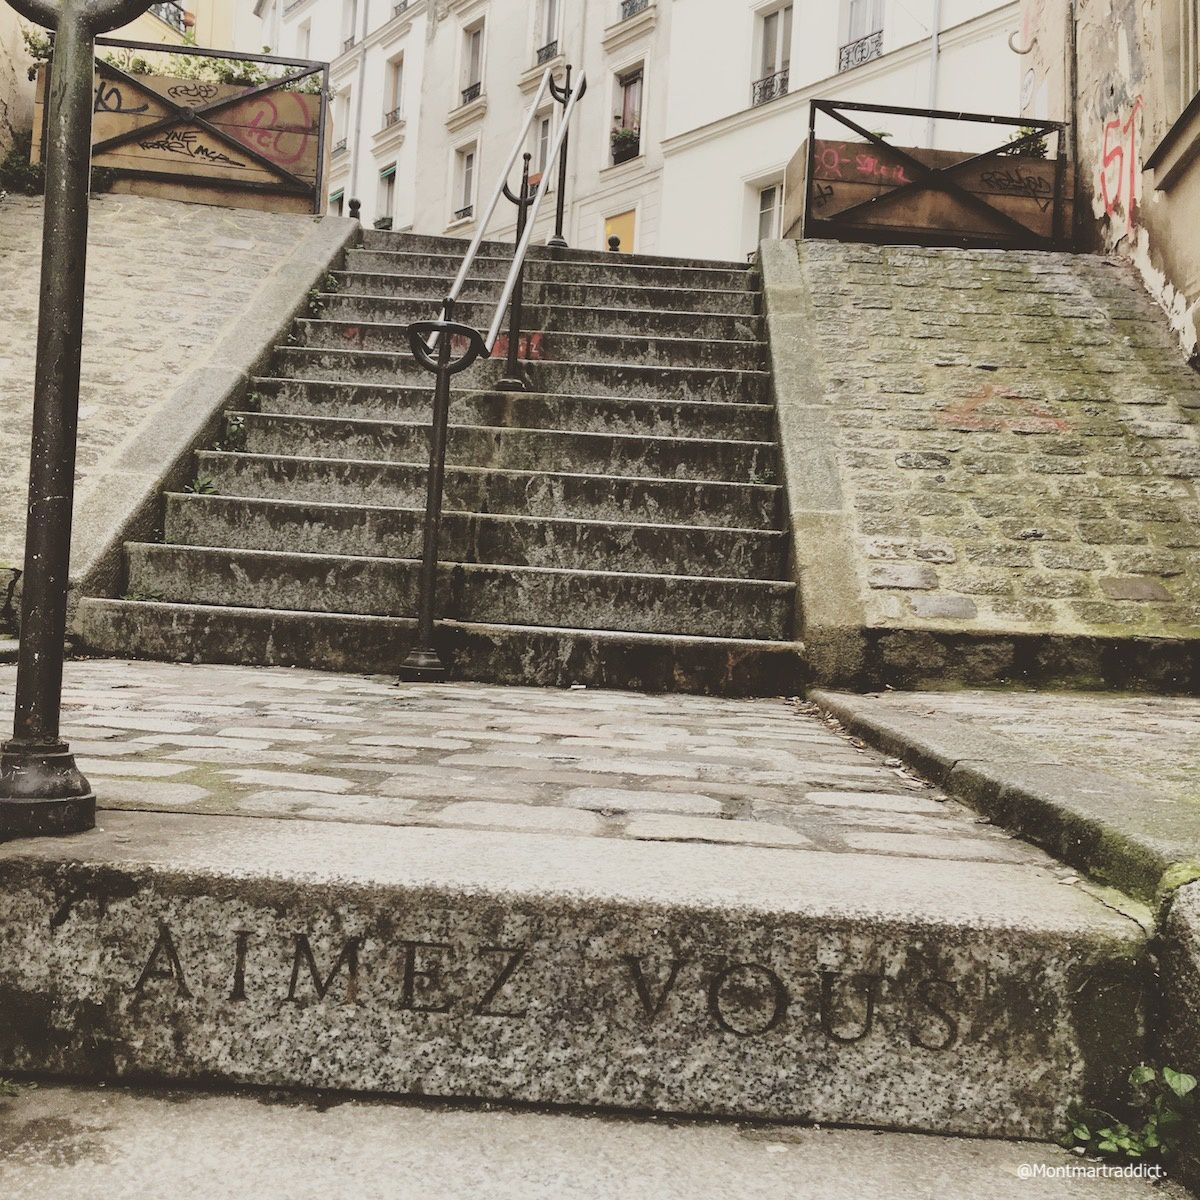 03. Love is in the stairs, Montmartre 75018